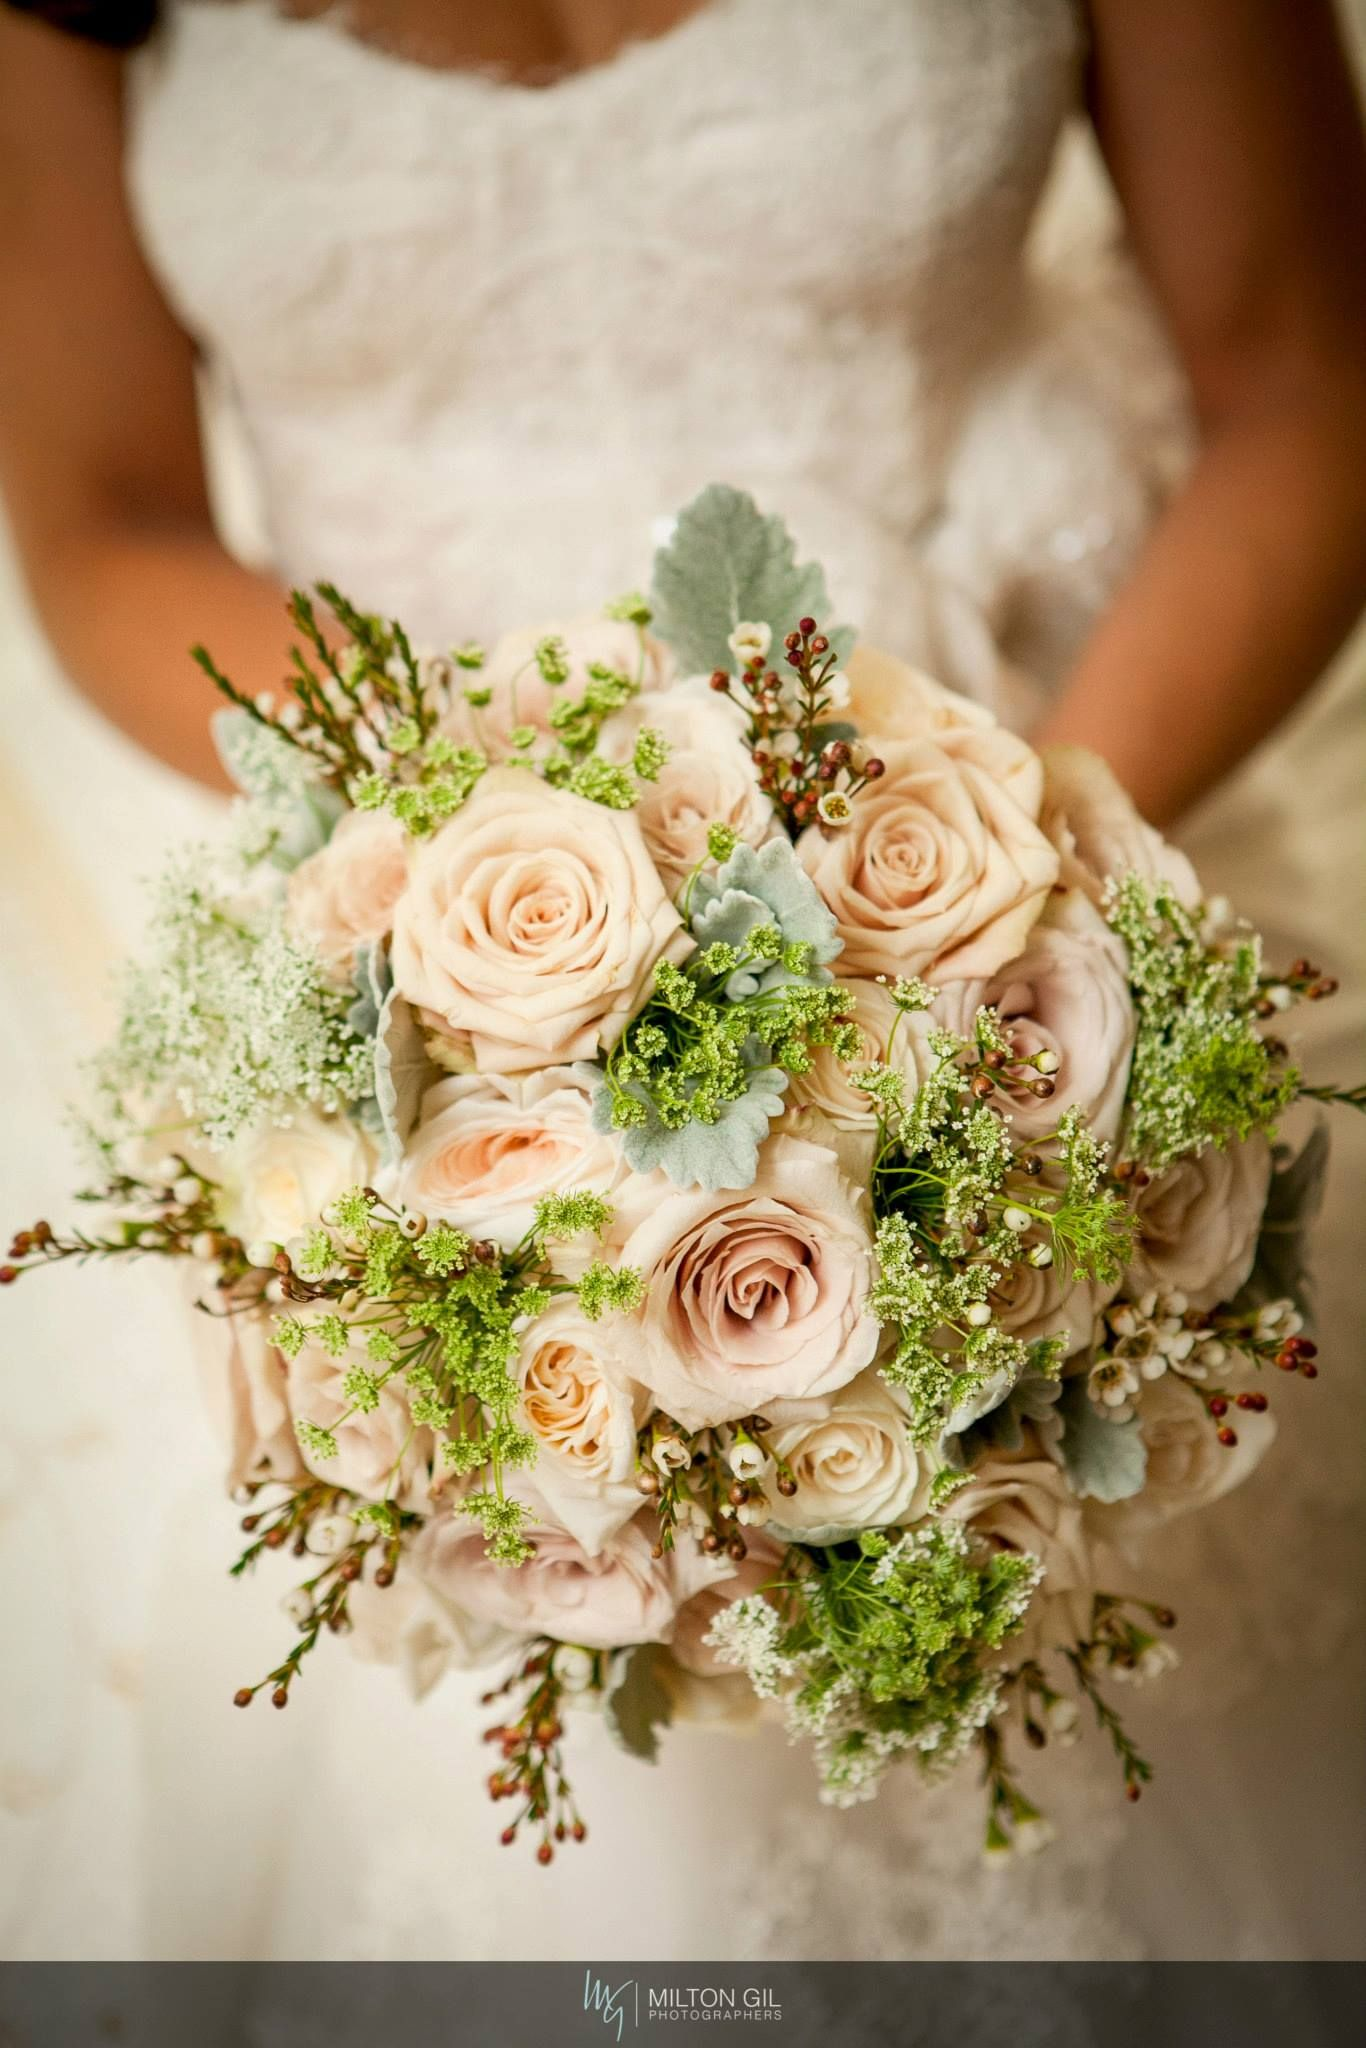 19 bridal bouquet types which wedding bouquet style is - HD 1366×2048